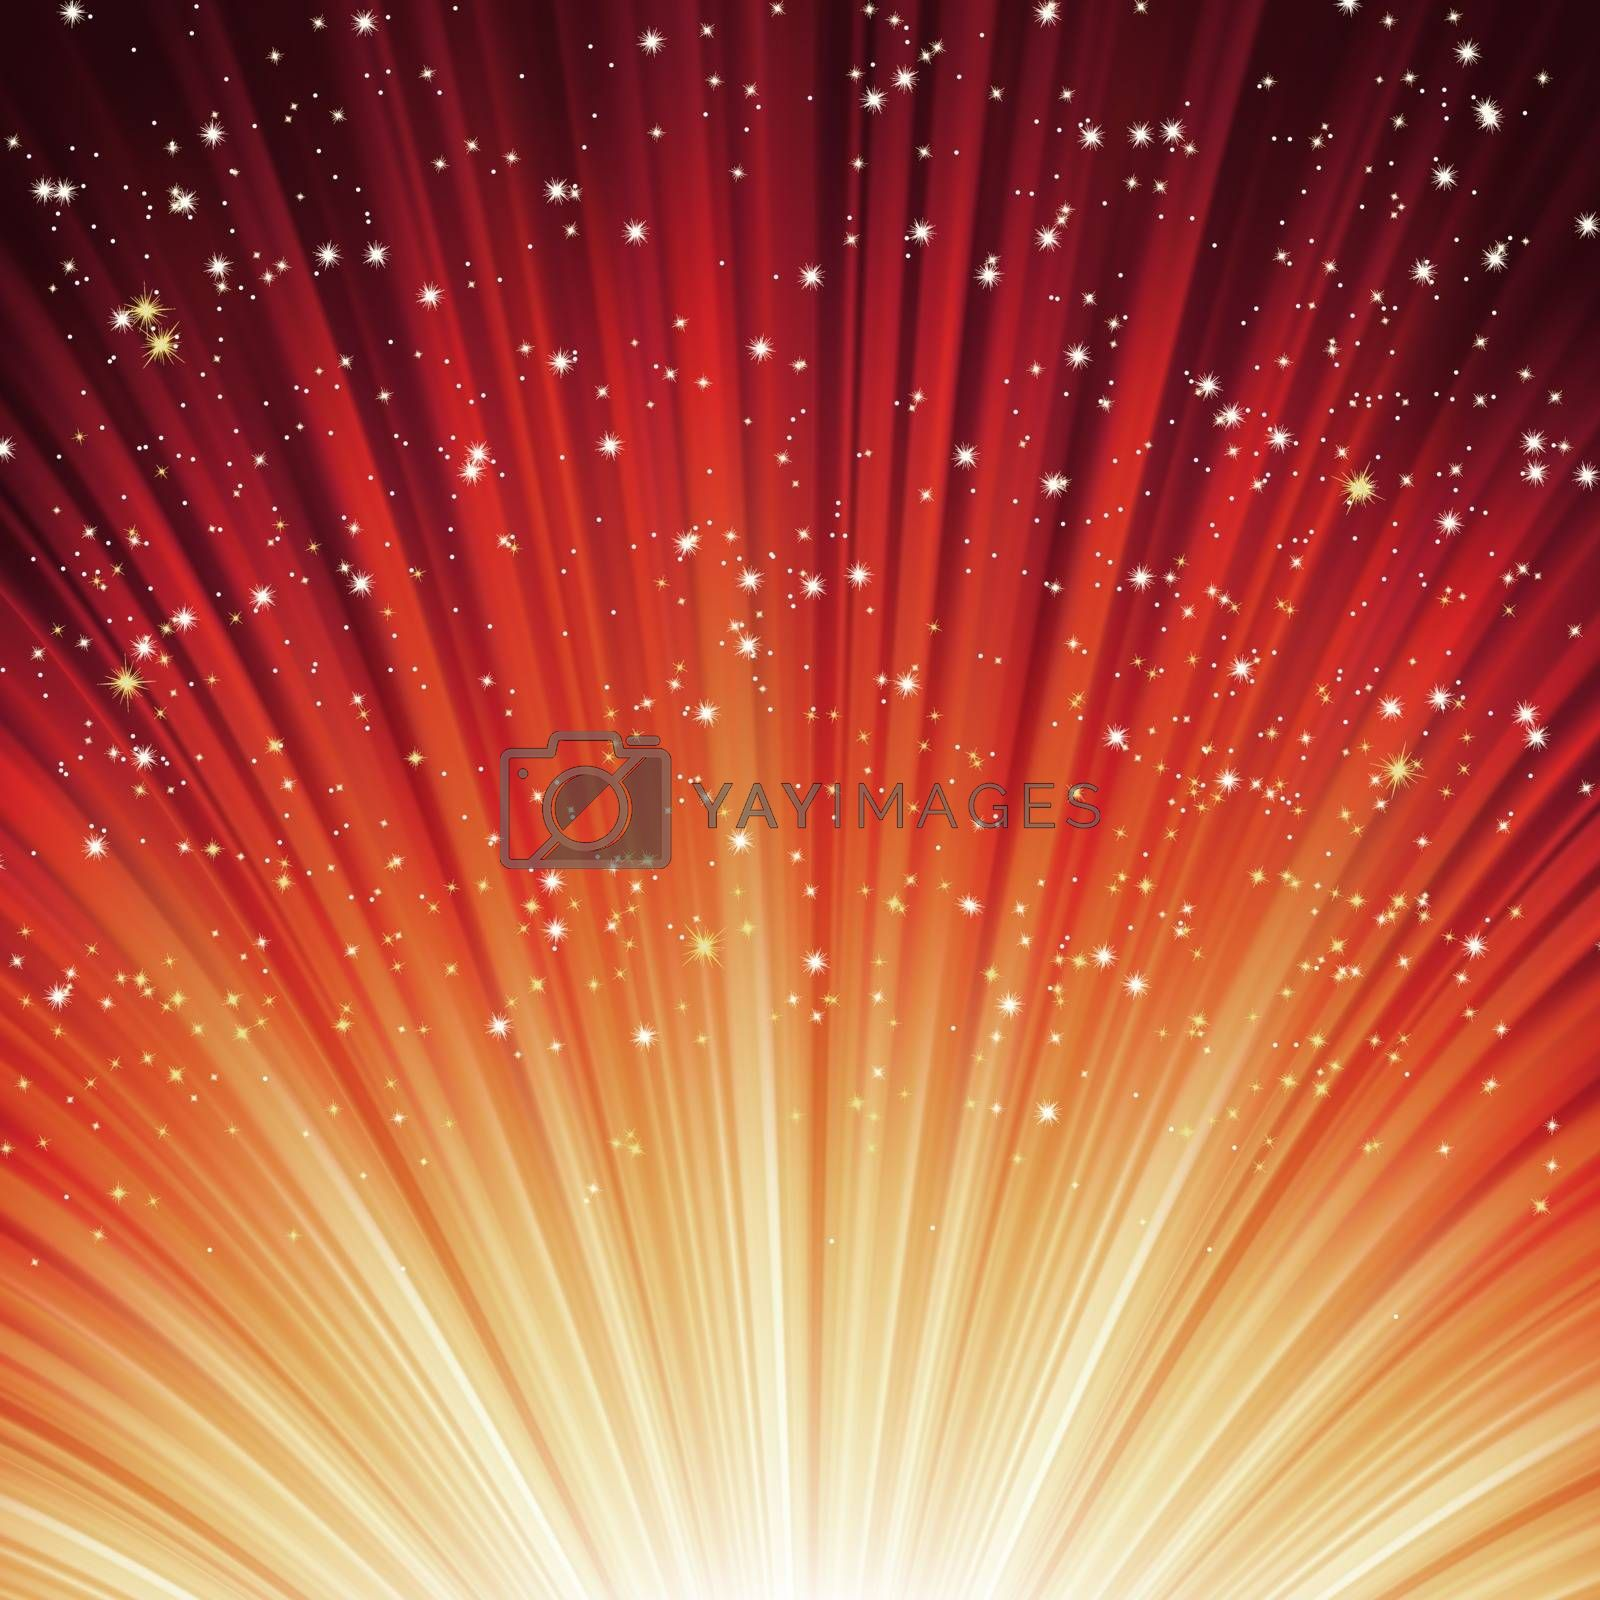 Snowflakes and stars descending on a path of red light. EPS 8 vector file included